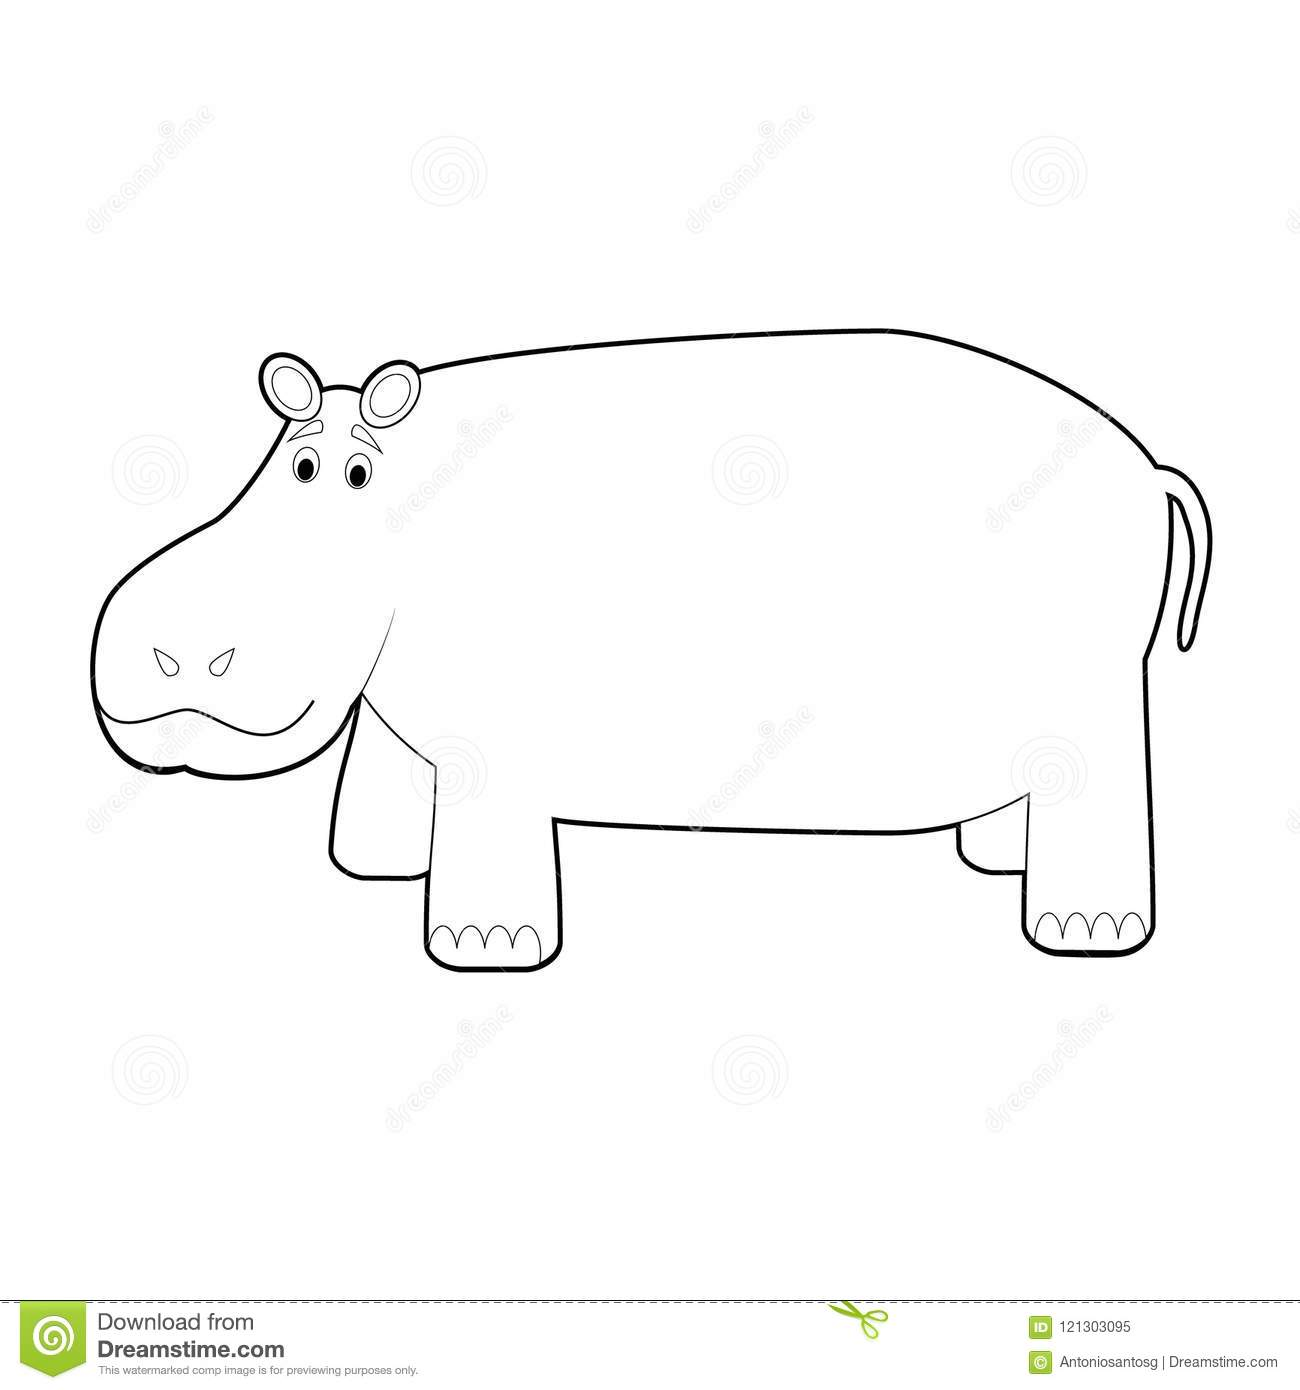 Easy Coloring Animals For Kids: Hippo Stock Vector.